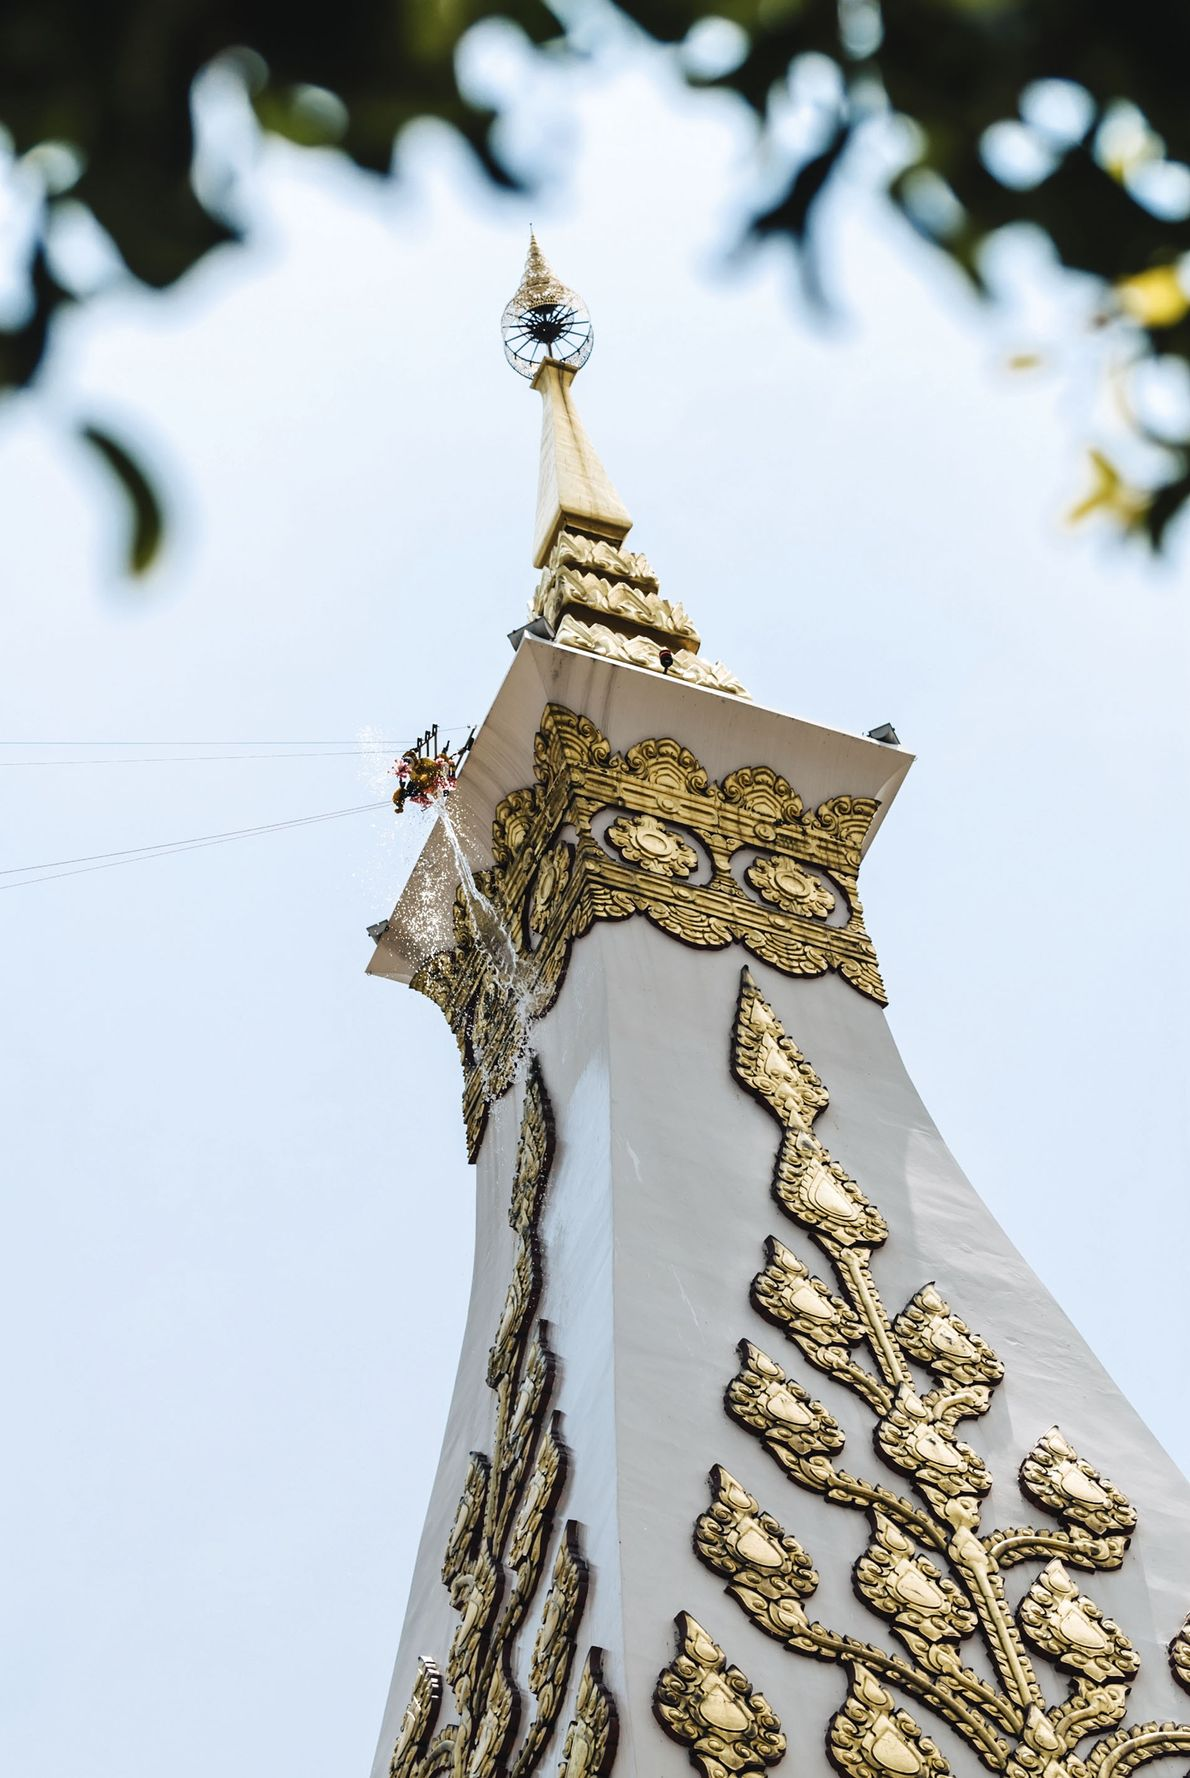 During the three days of Songkran, Wat Phra That Phanom is outfitted with an elaborate rig ...